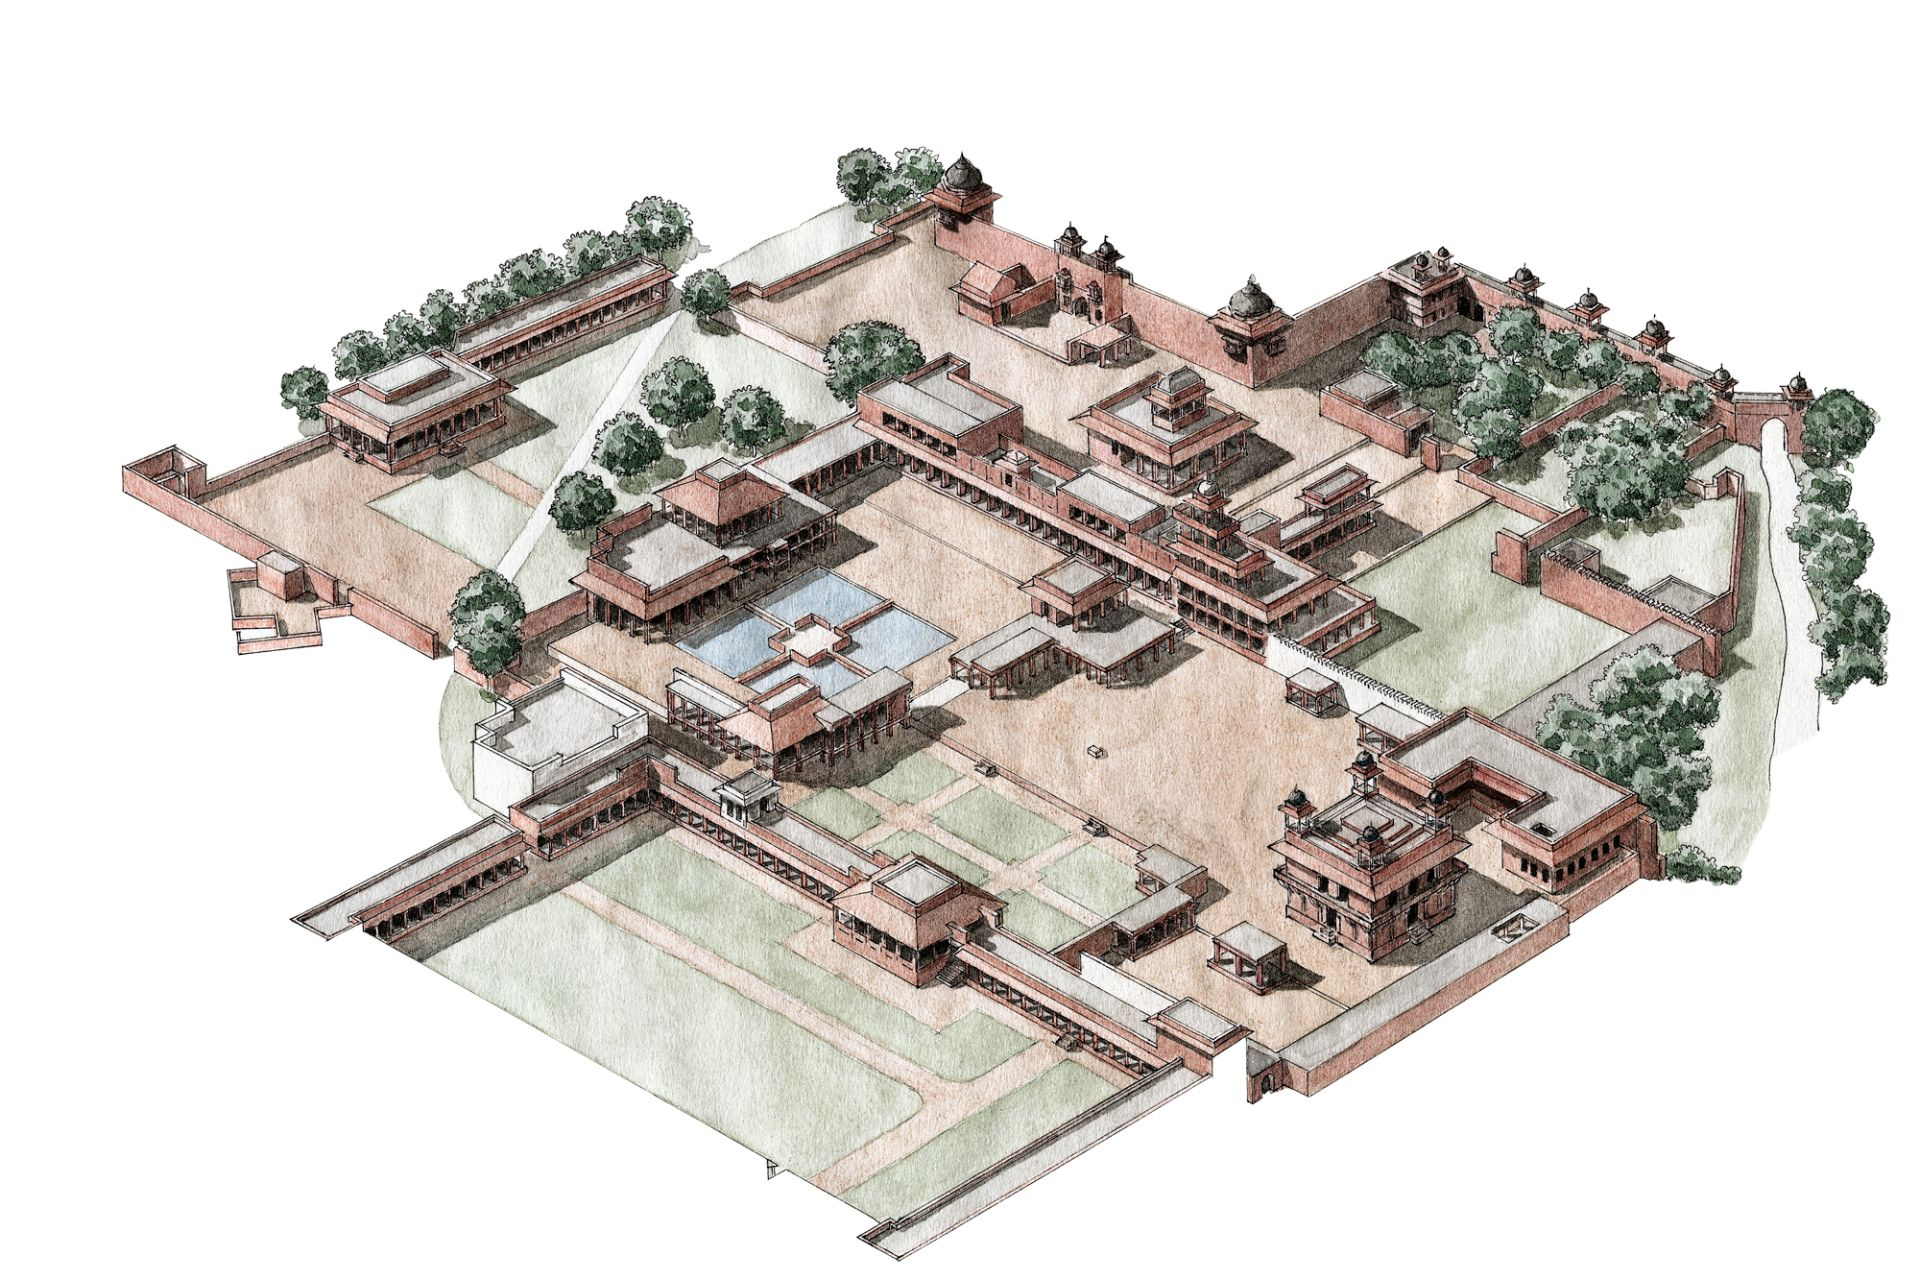 Fatehpur sikri fatehpur sikri history dk find out for Diwan i aam images